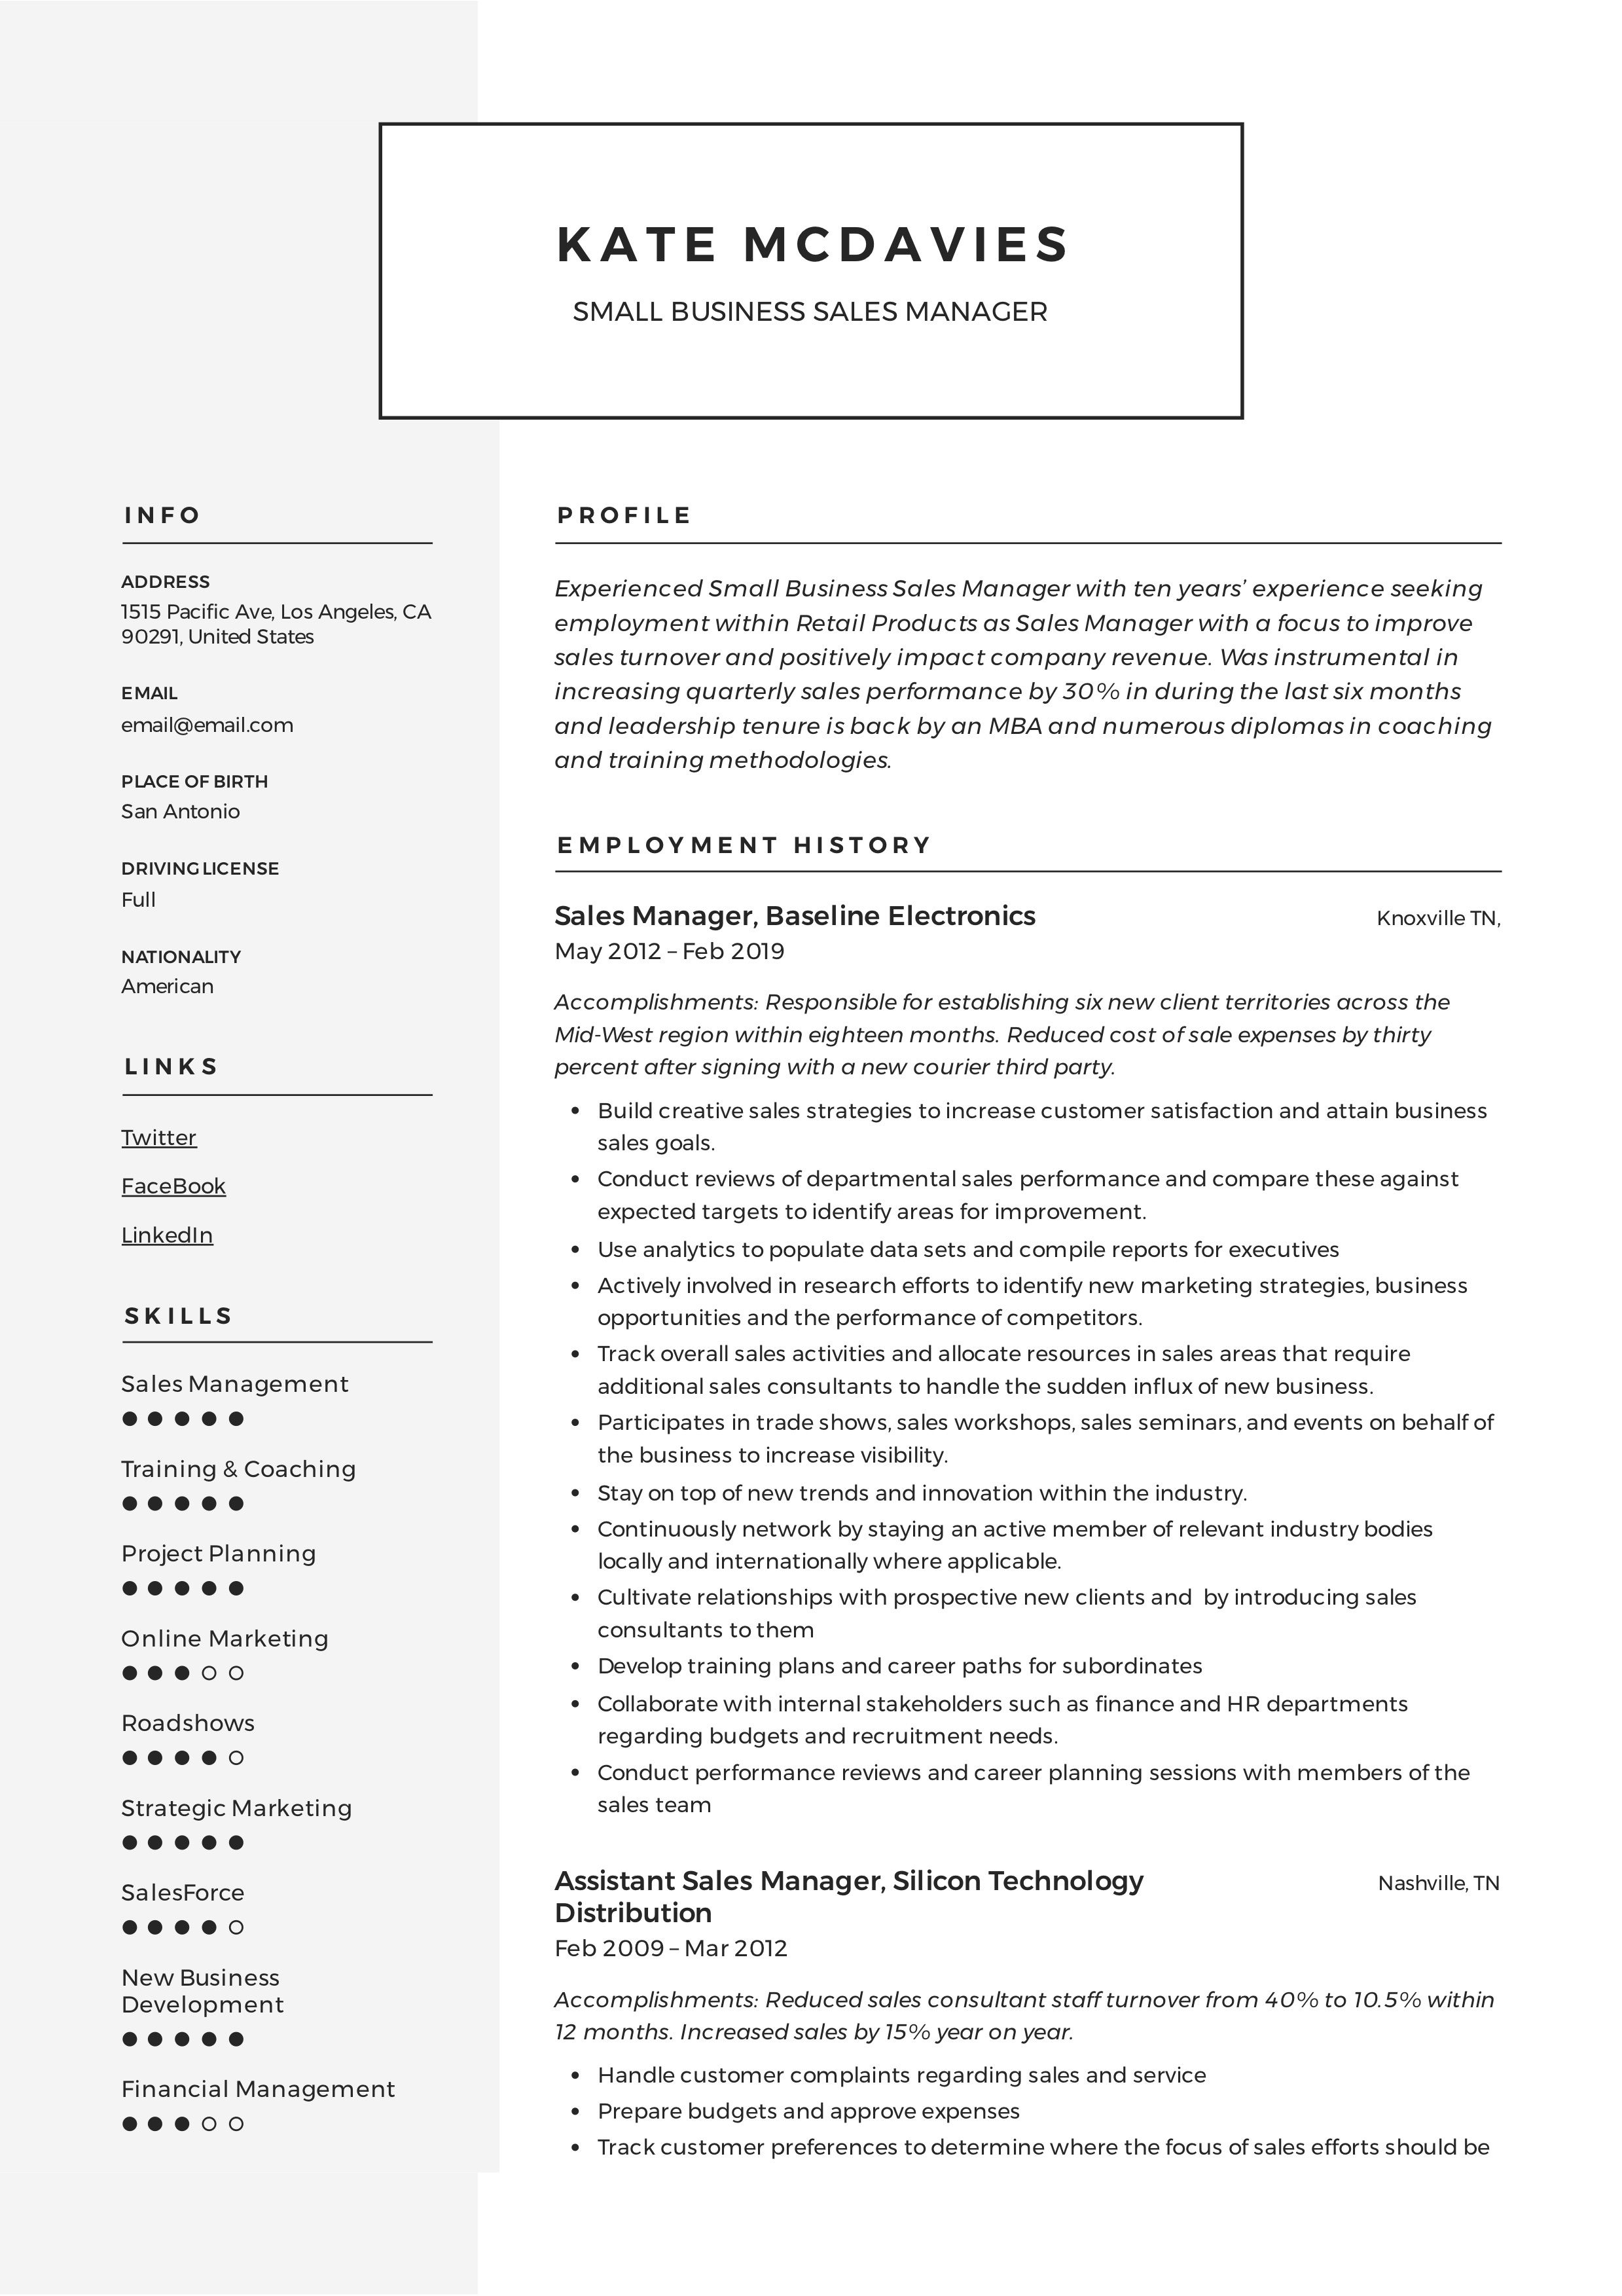 Guide Small Business Sales Manager Resume [x12] Sample in